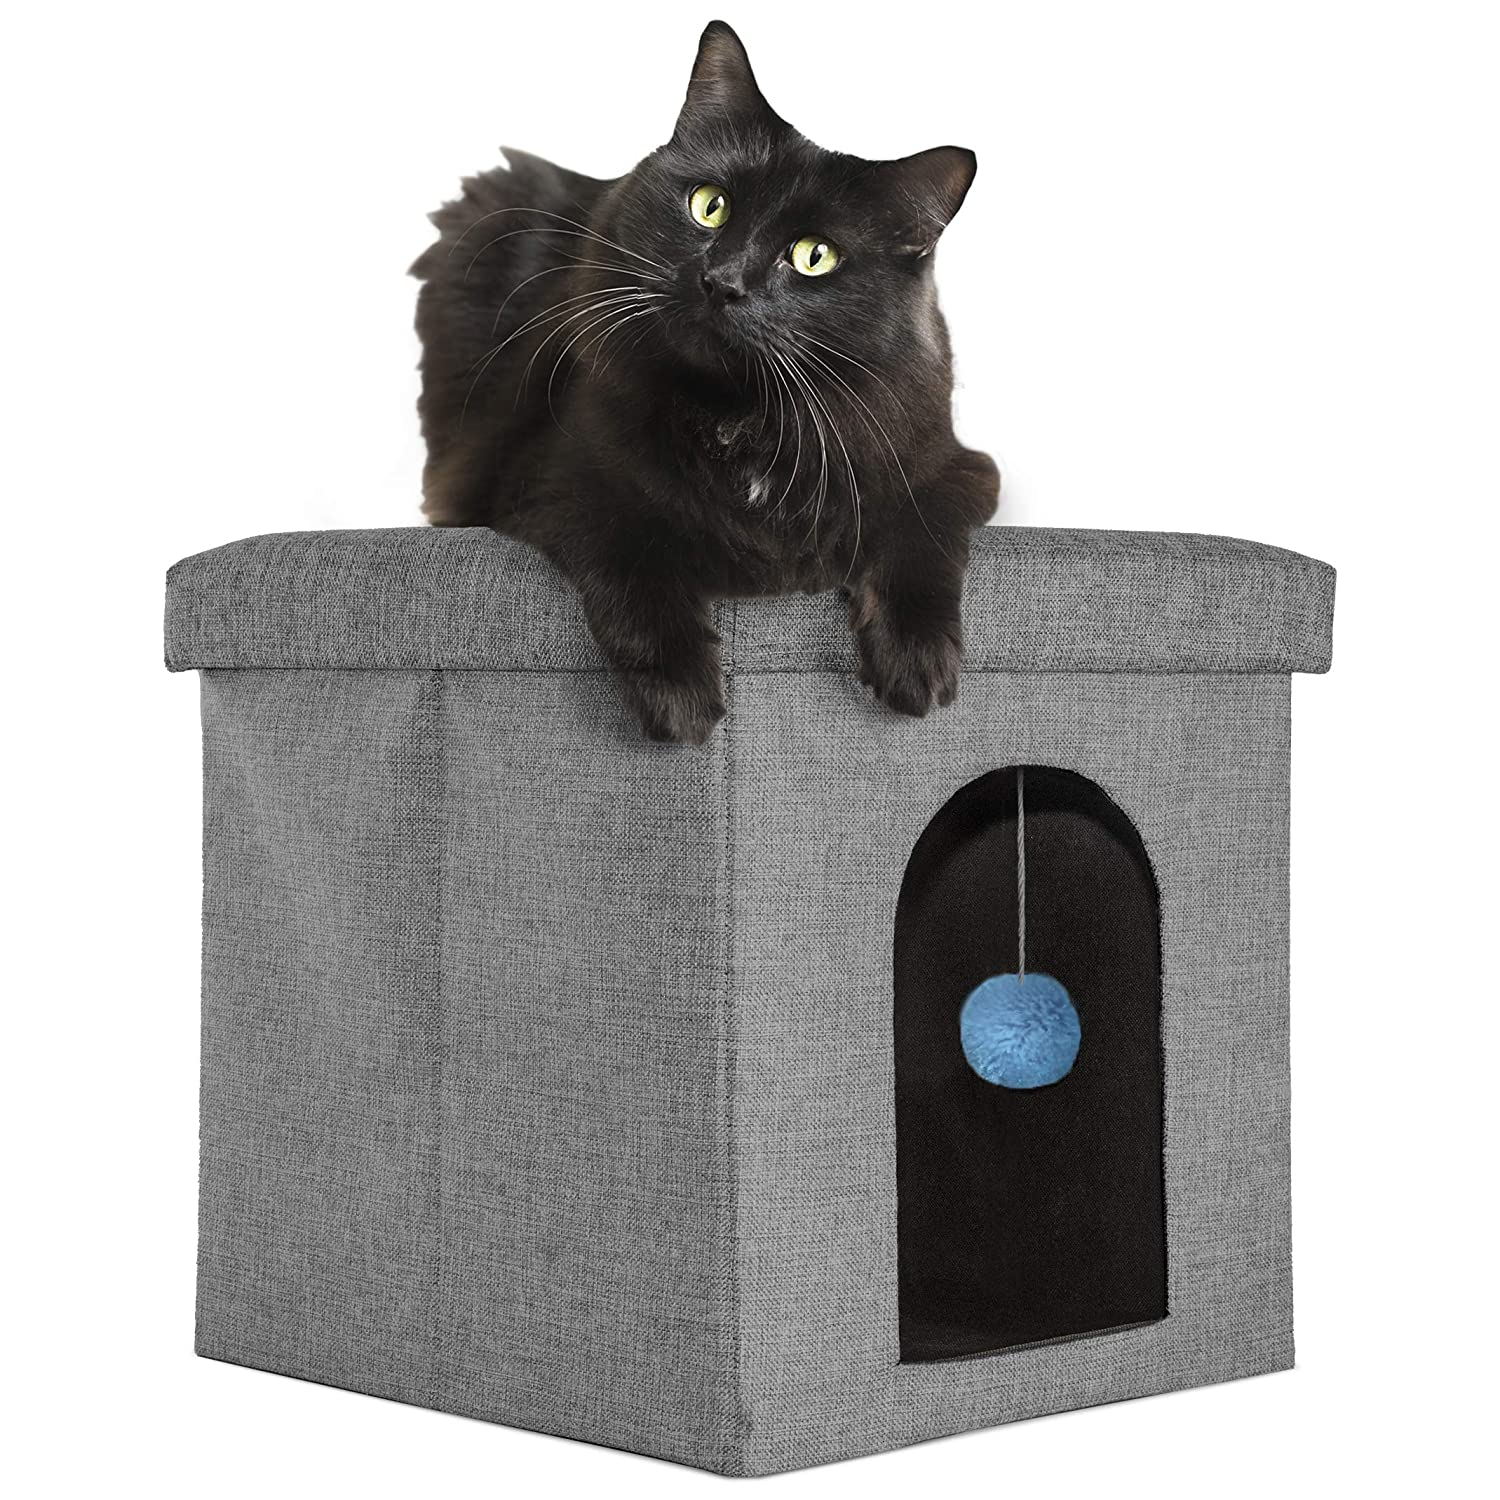 Available in Multiple Colors /& Styles Furhaven Pet Dog Bed Felt Pet House Private Hideout Den /& Collapsible Pop Up Living Room Ottoman Footstool Condo for Cats /& Small Dogs